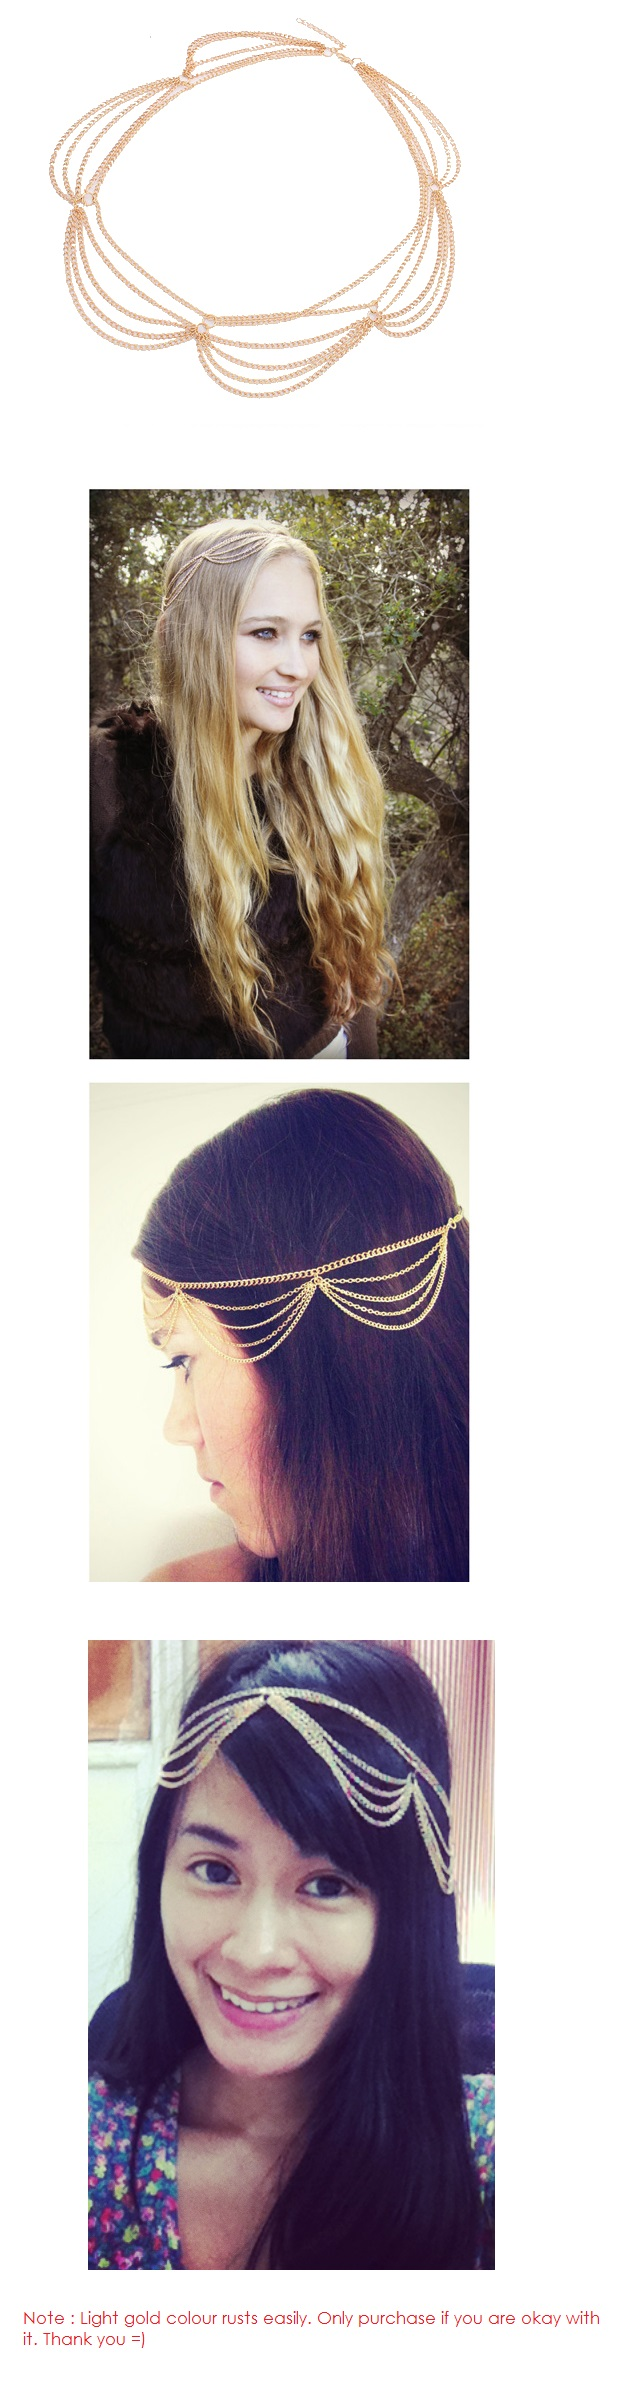 A-ZL-F15 P105191 Dangling gold hair accessories korean shop